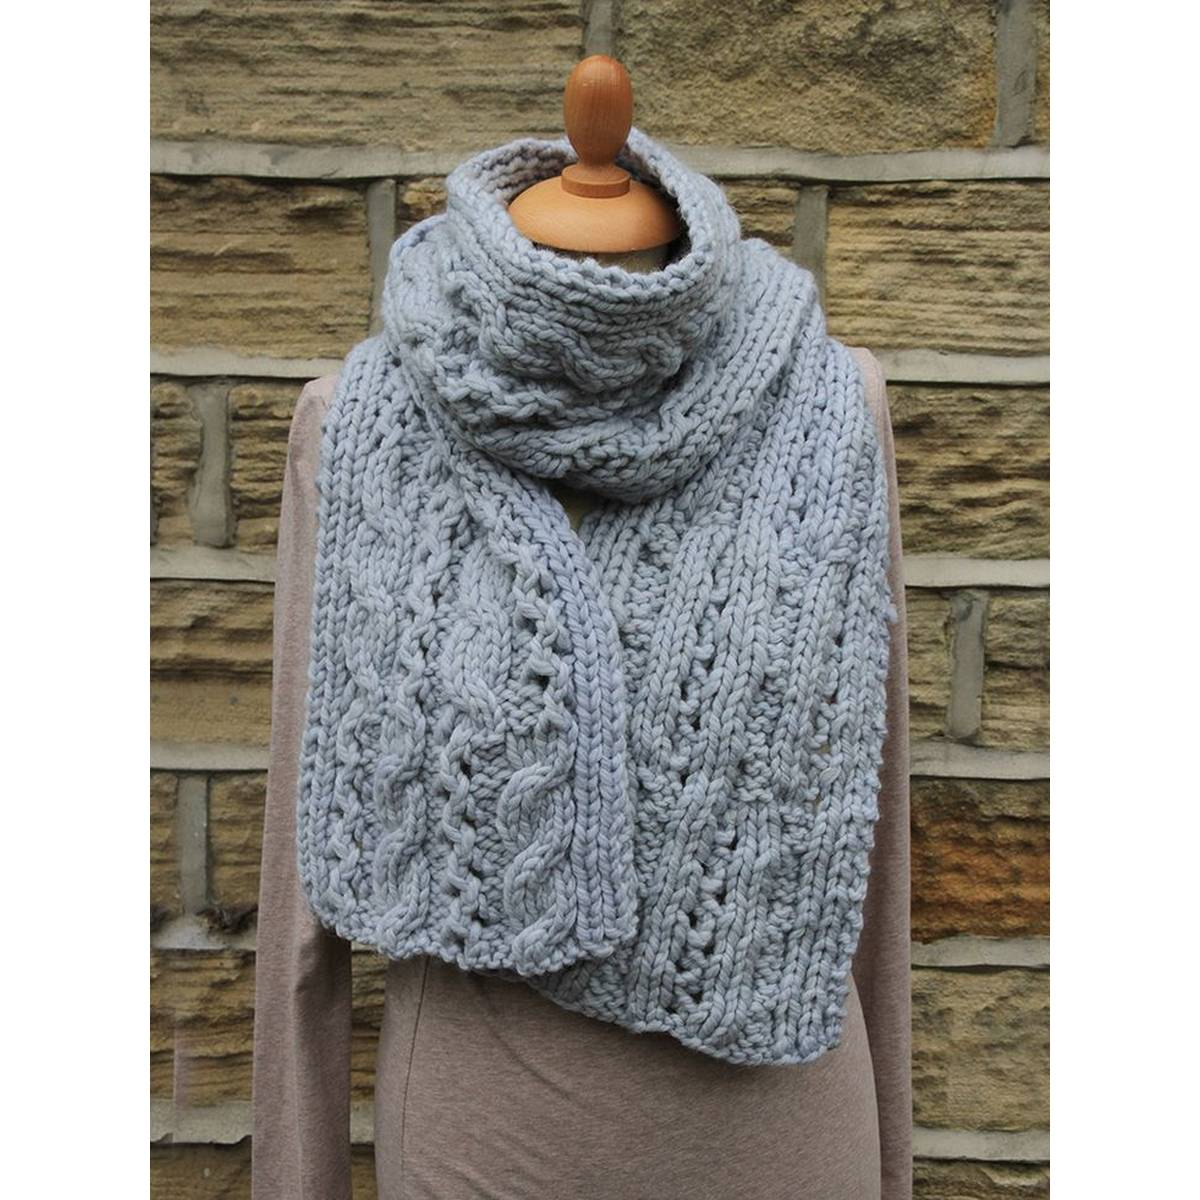 Cable Knitted Scarf Pattern Rowan Lace Cable Scarf Digital Pattern